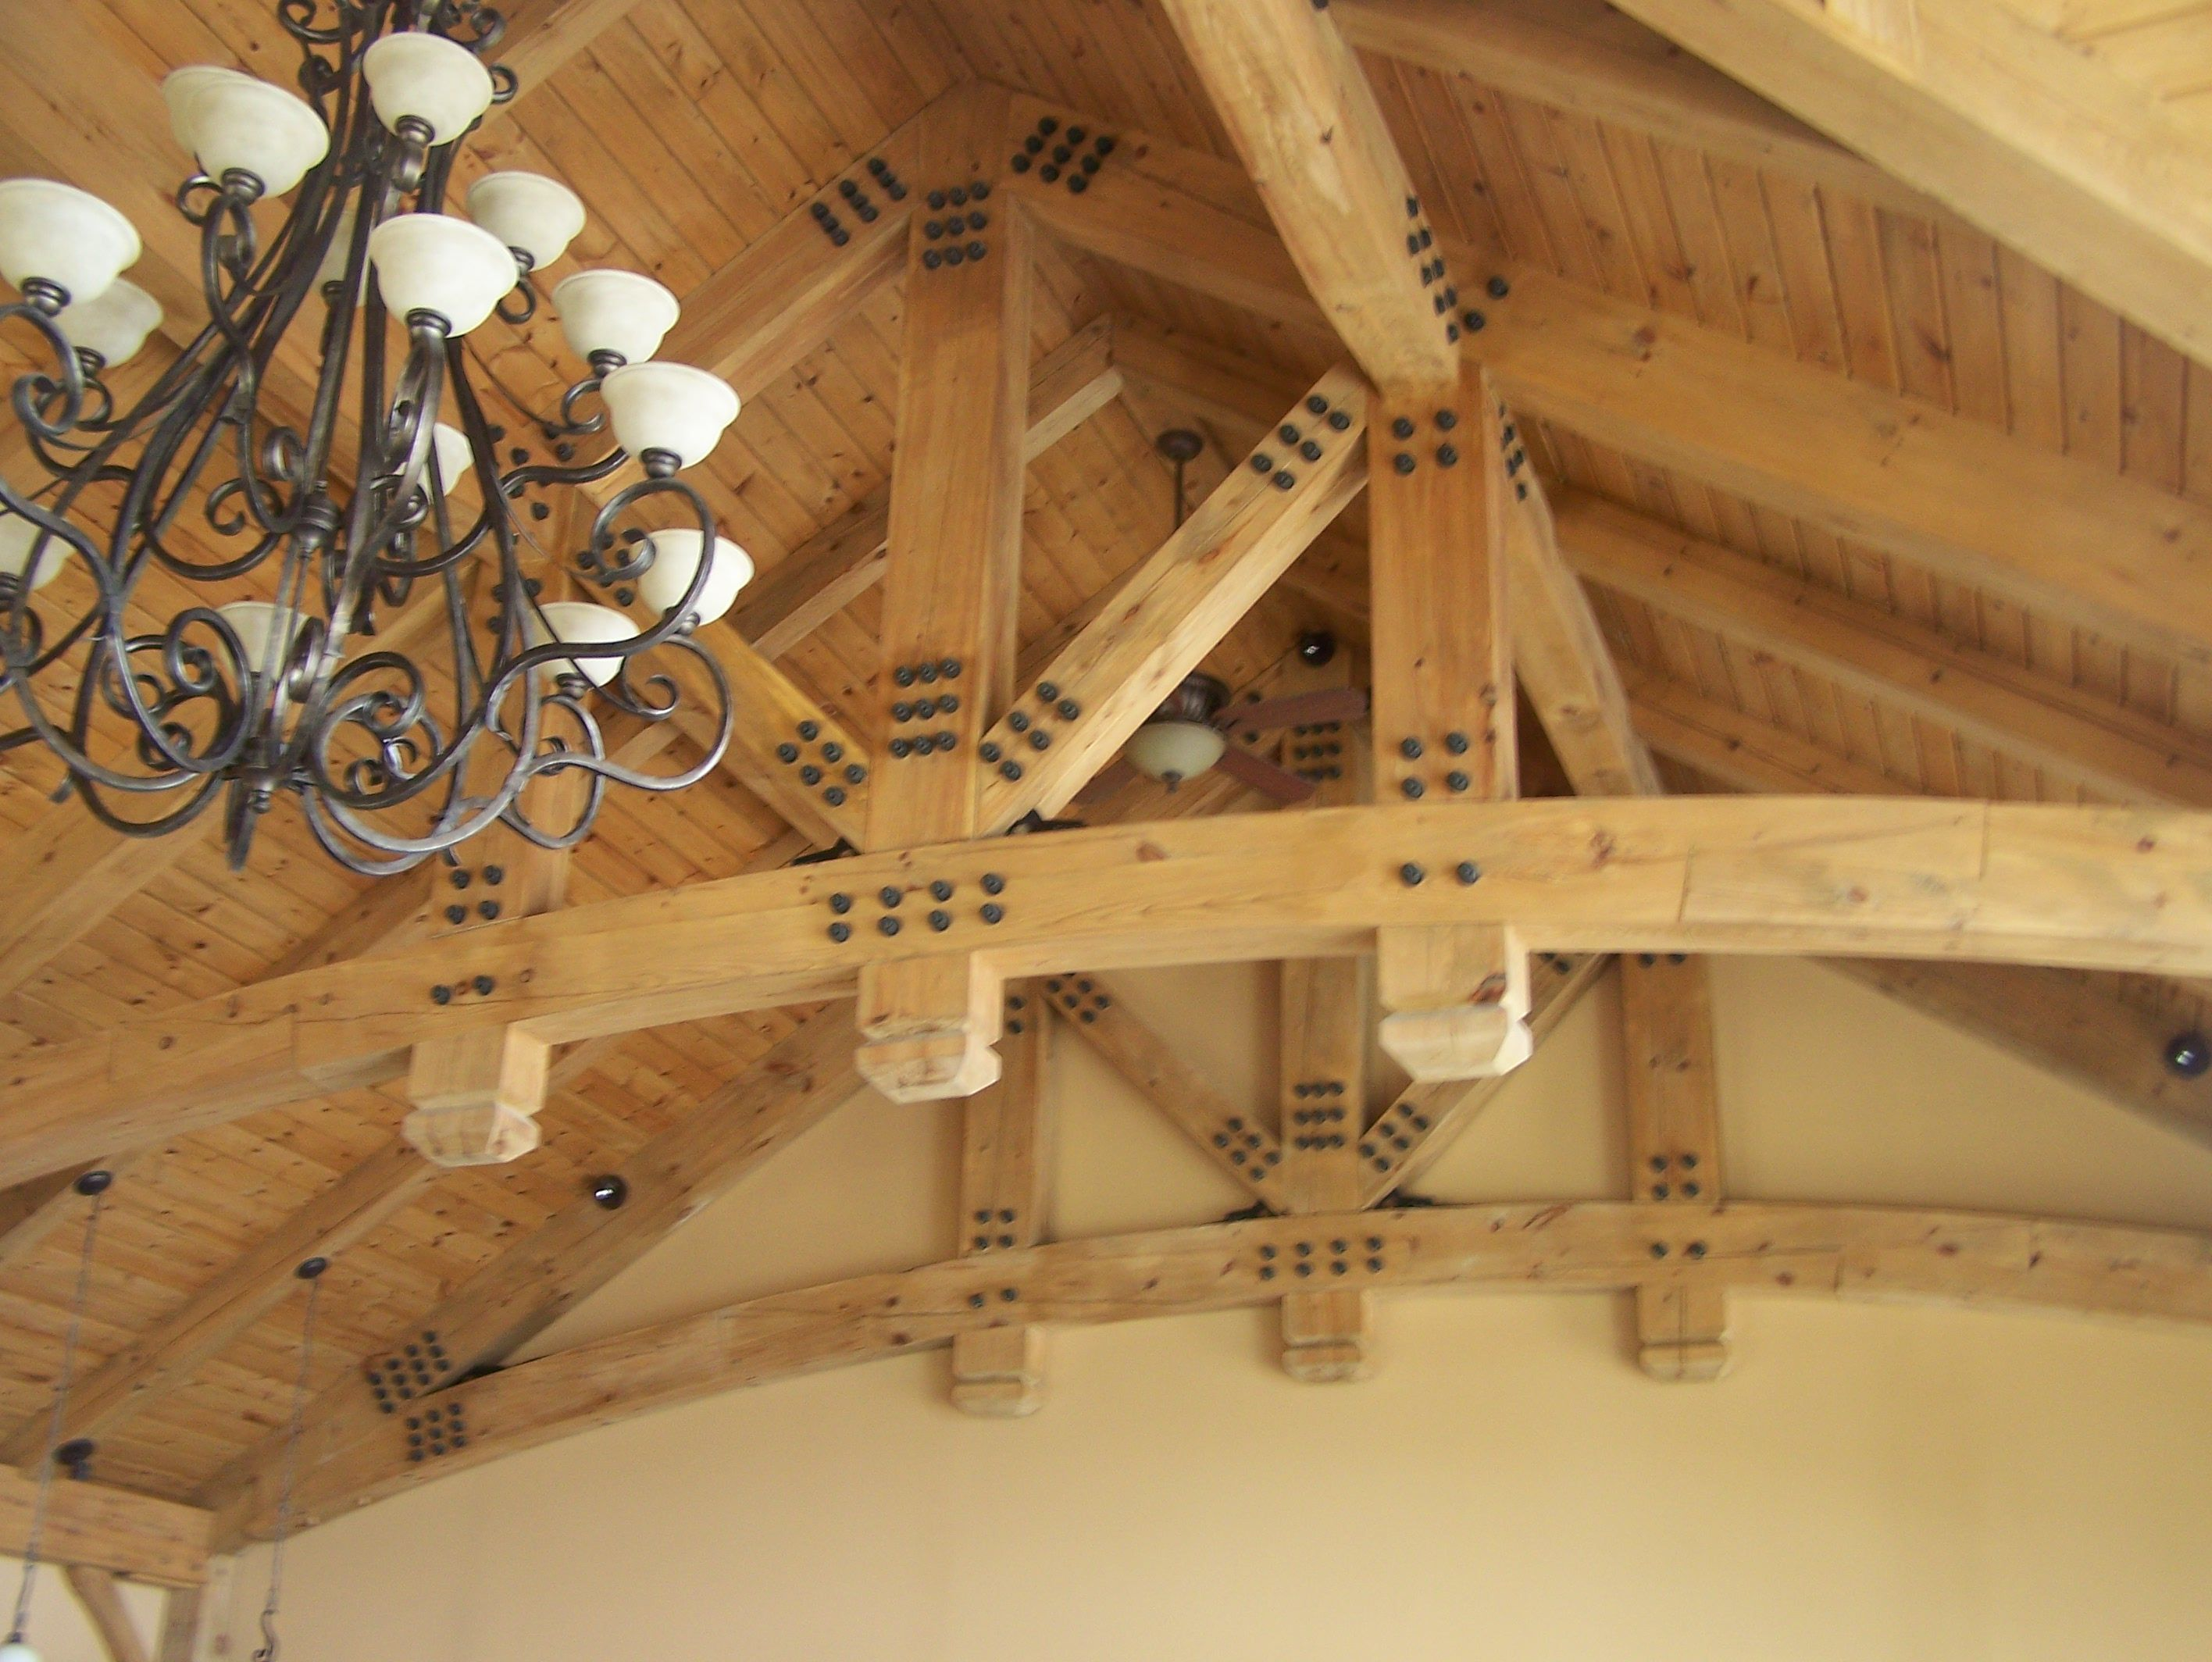 Timber Frame Ceiling Accent Within Our Beach House #TimberFrame #Log #Custom #Accent #BeachHouse #DiscoveryDreamHomes